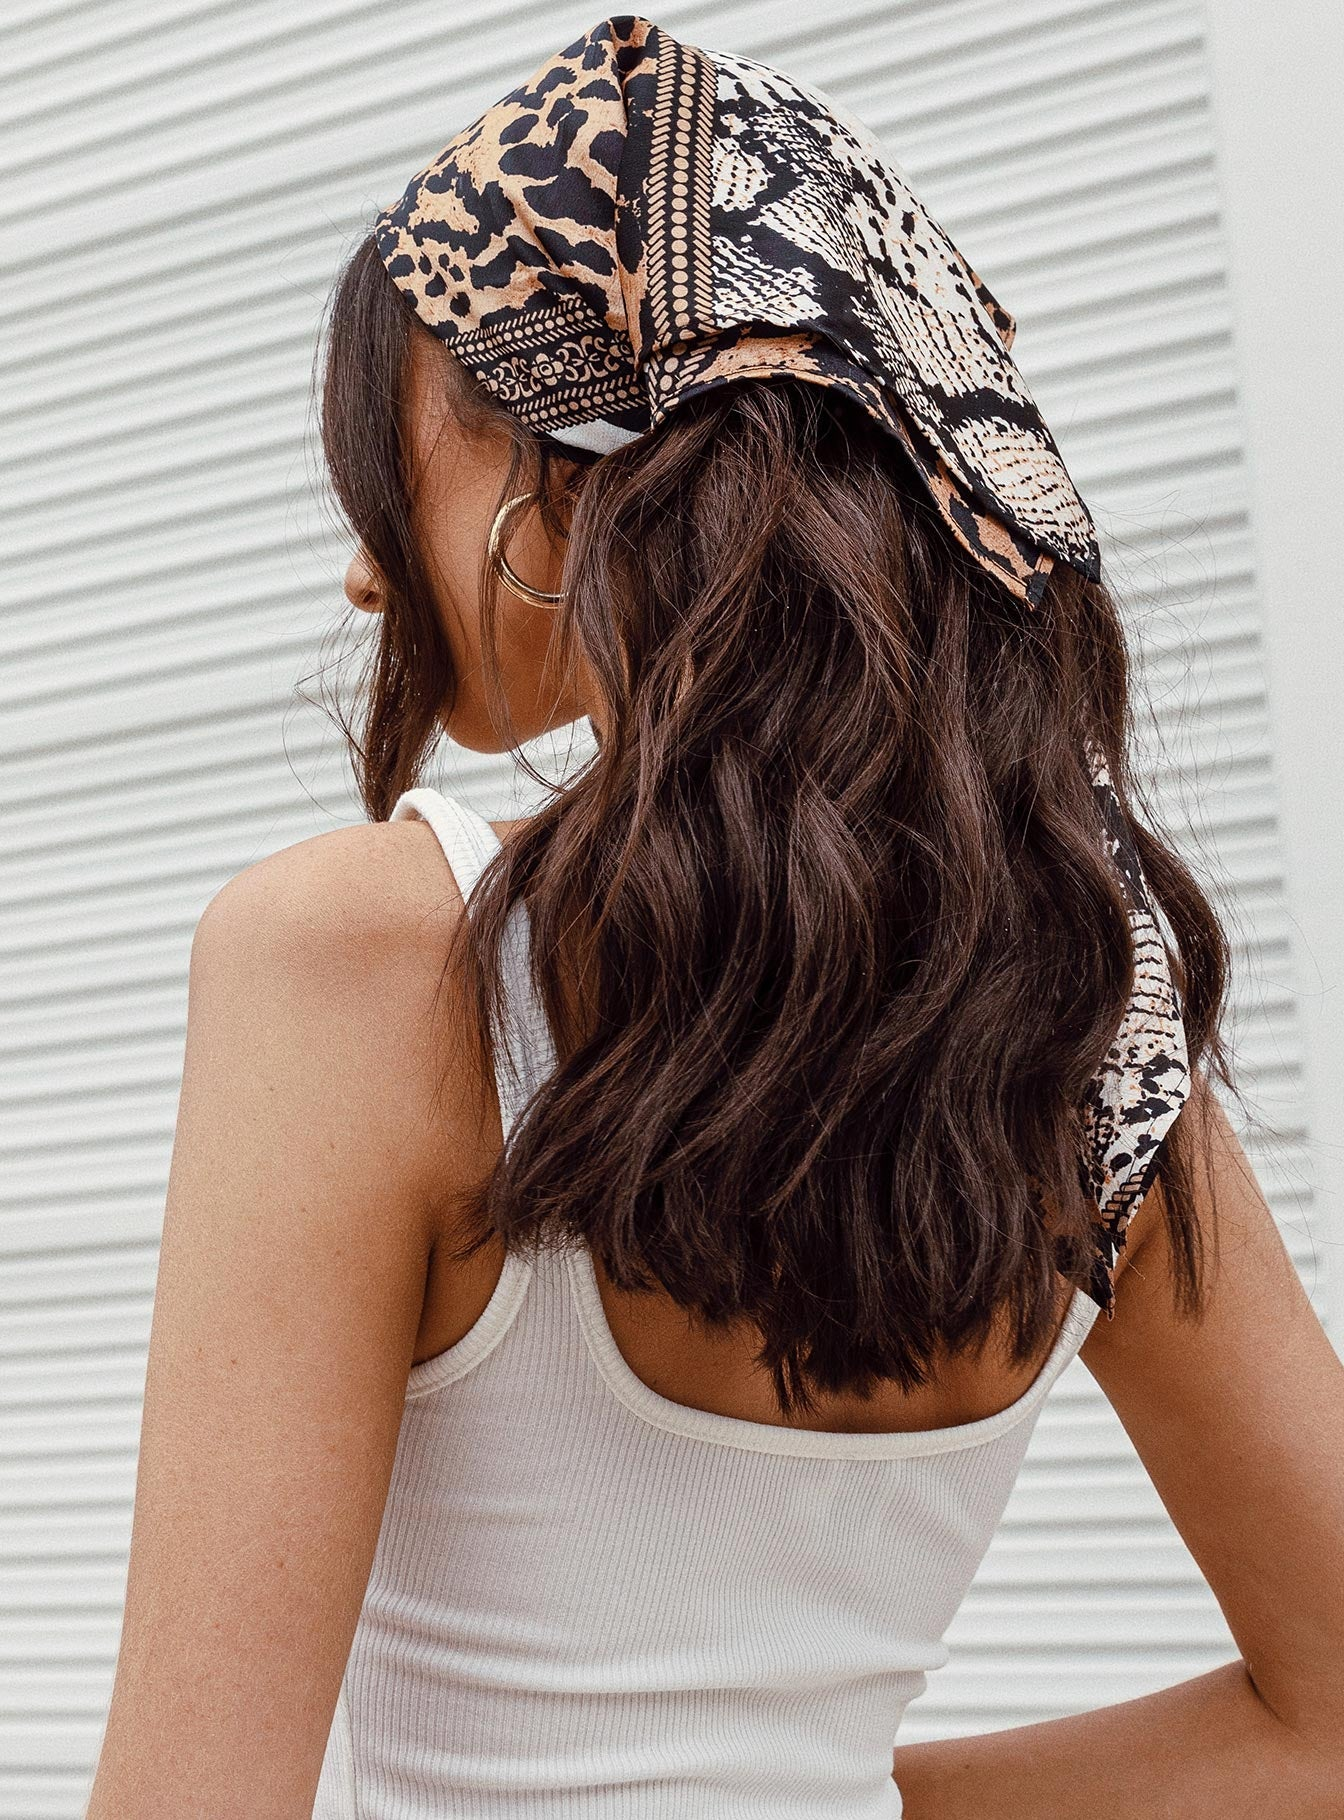 The Baroda Hair Scarf